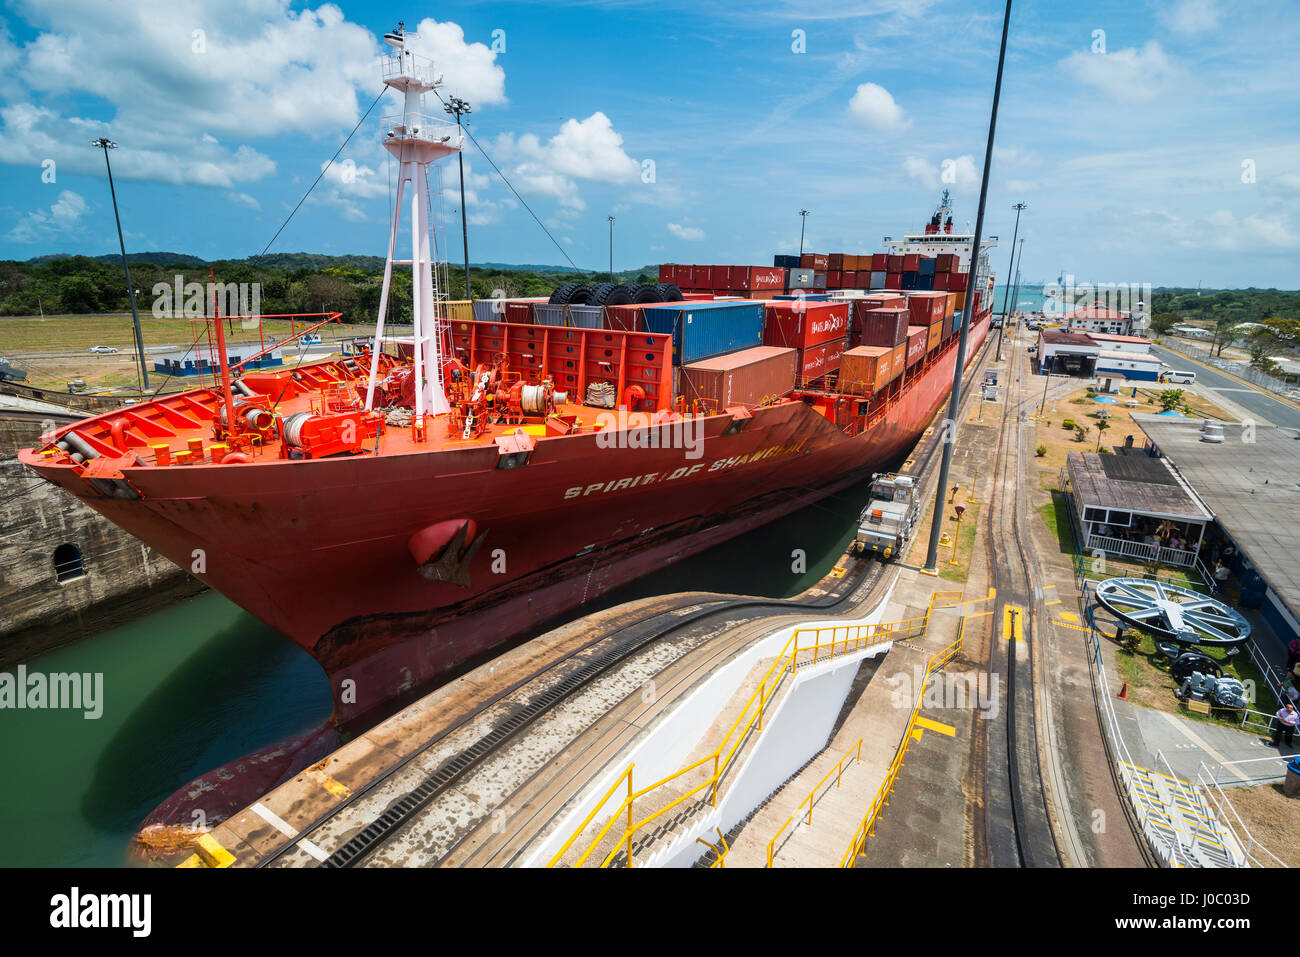 Cargo boats passing the Gatun Locks, Panama Canal. Panama, Central America - Stock Image